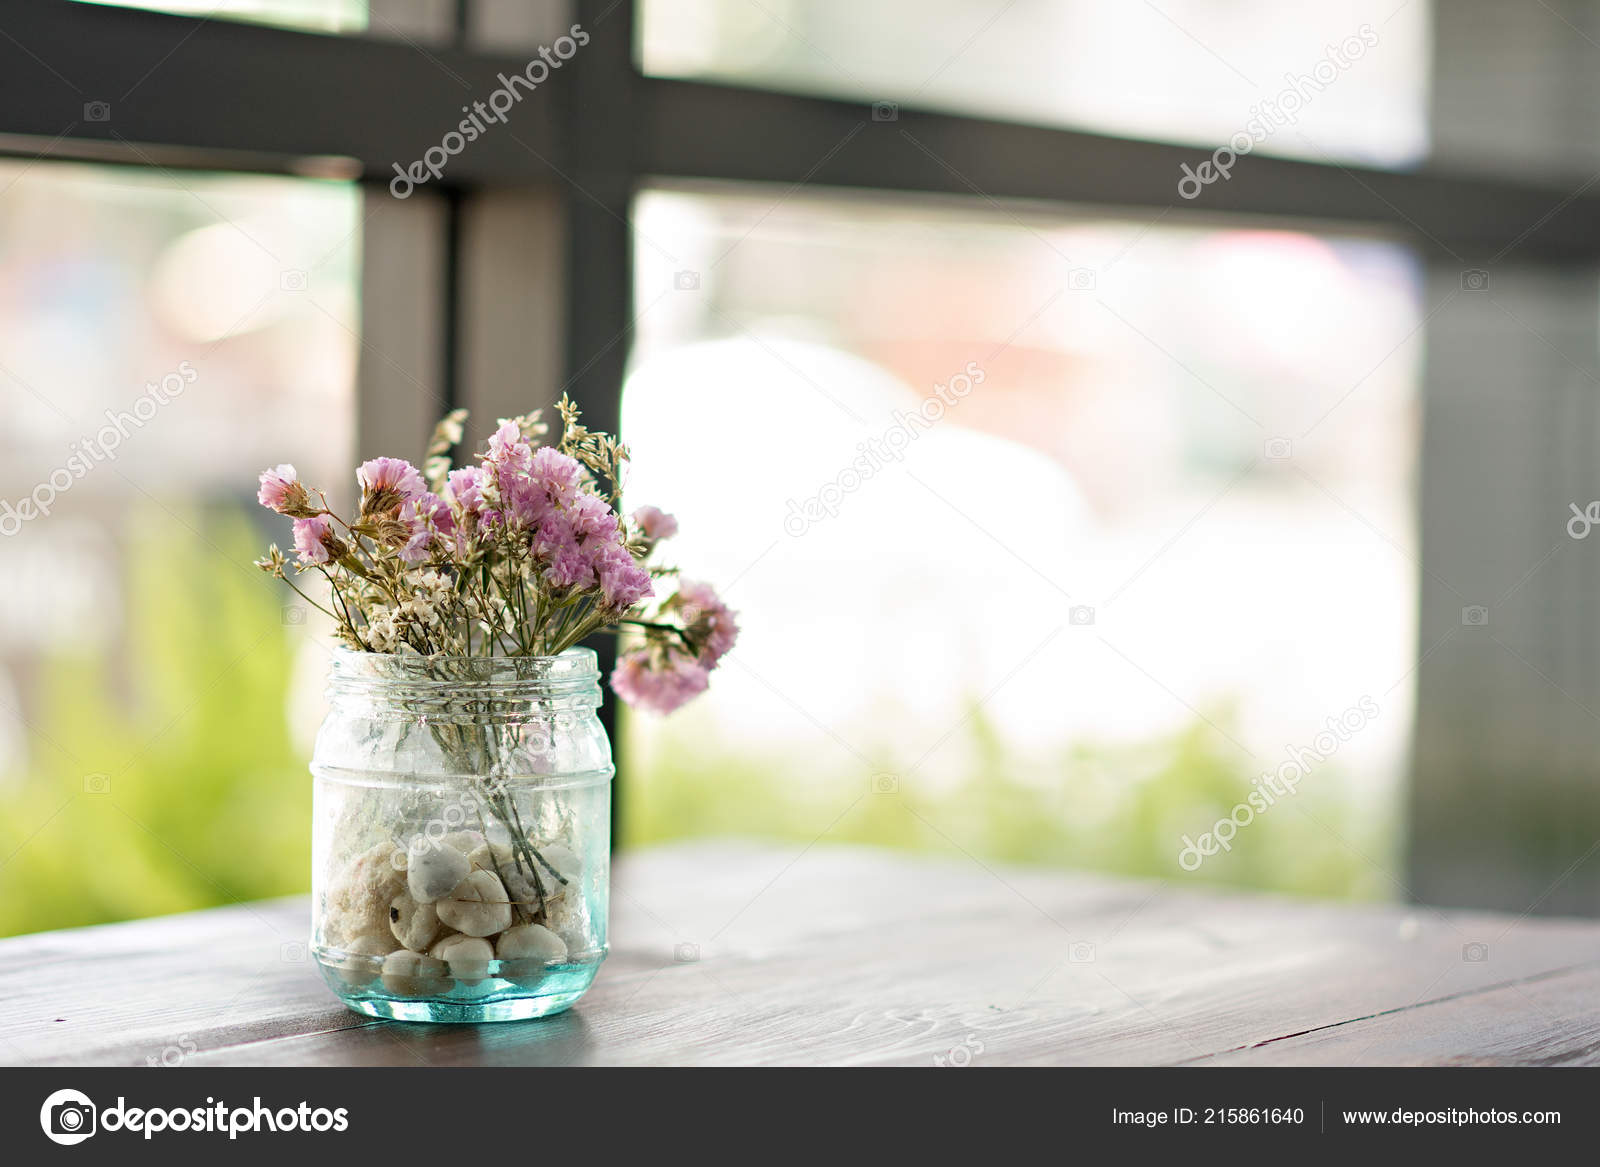 Dry Flowers Vase Wooden Table Decorate Home Coffee Cafe Concept Stock Photo C Bulltus Casso 215861640